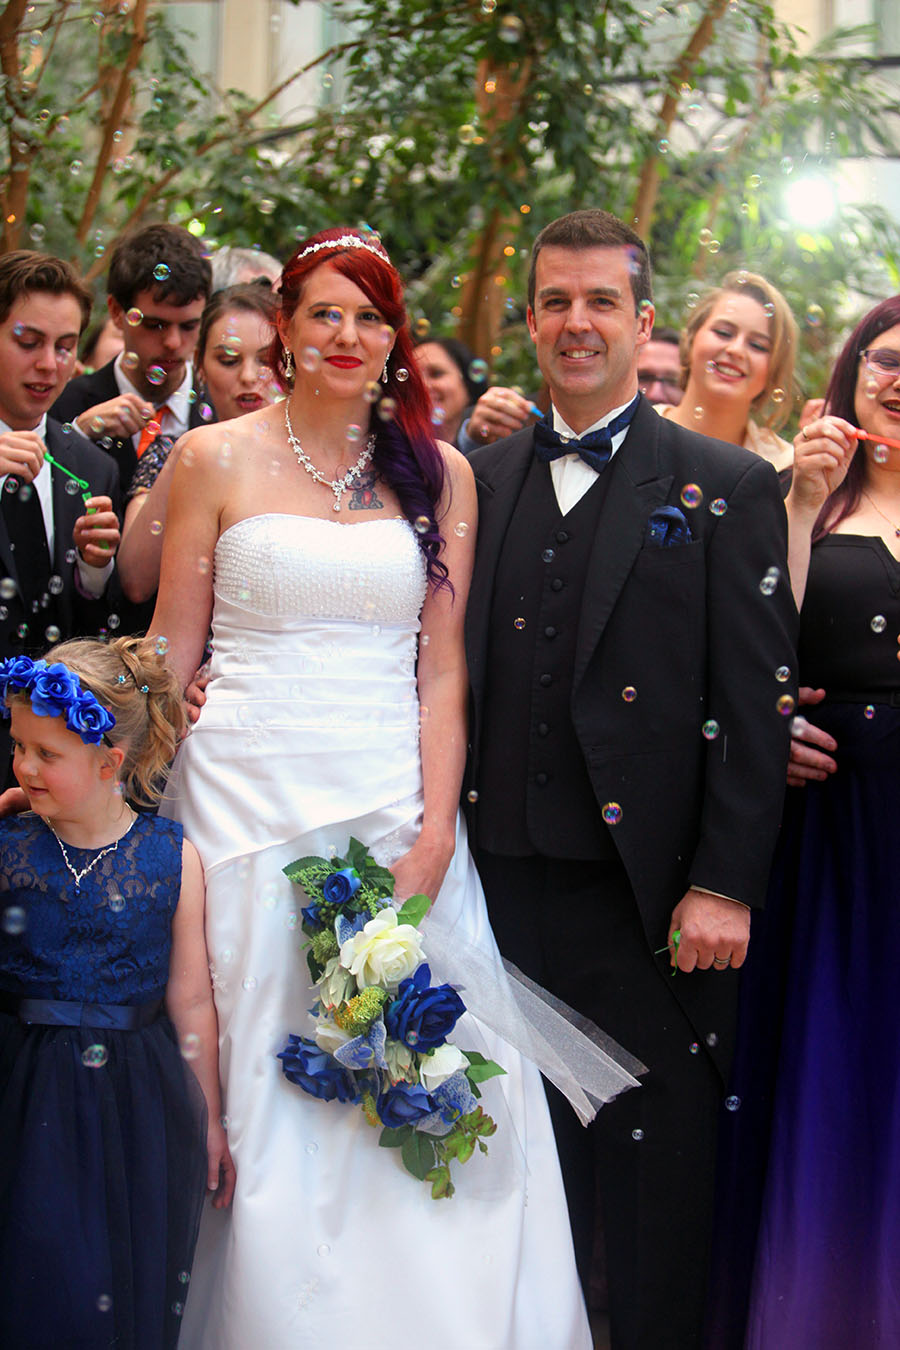 Wedding celebration with bubble blowing. Canberra wedding bride groom covered in bubbles